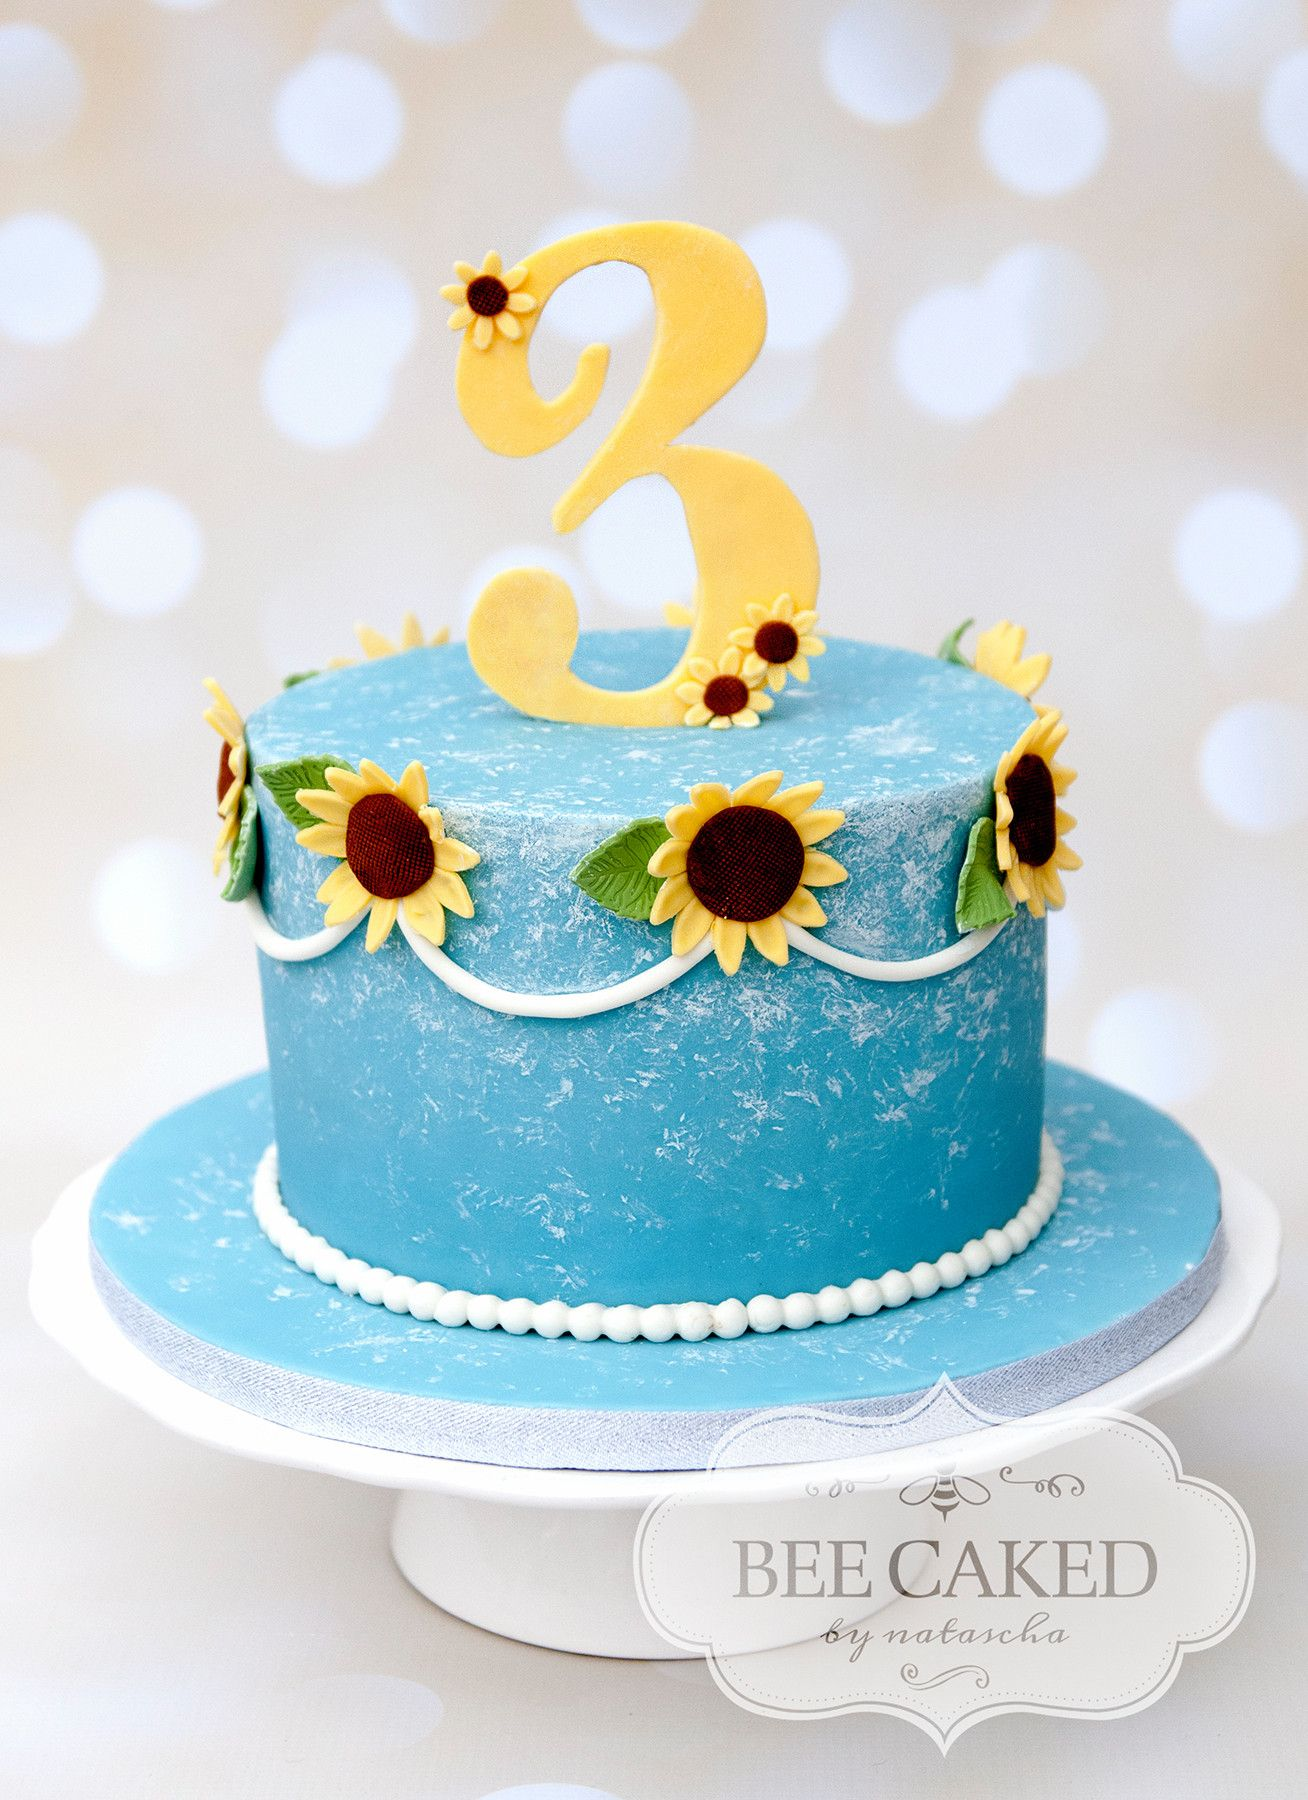 Decoration Olaf Anniversaire Frozen Fever Cake Bee Caked Edible Art Gateau Fete